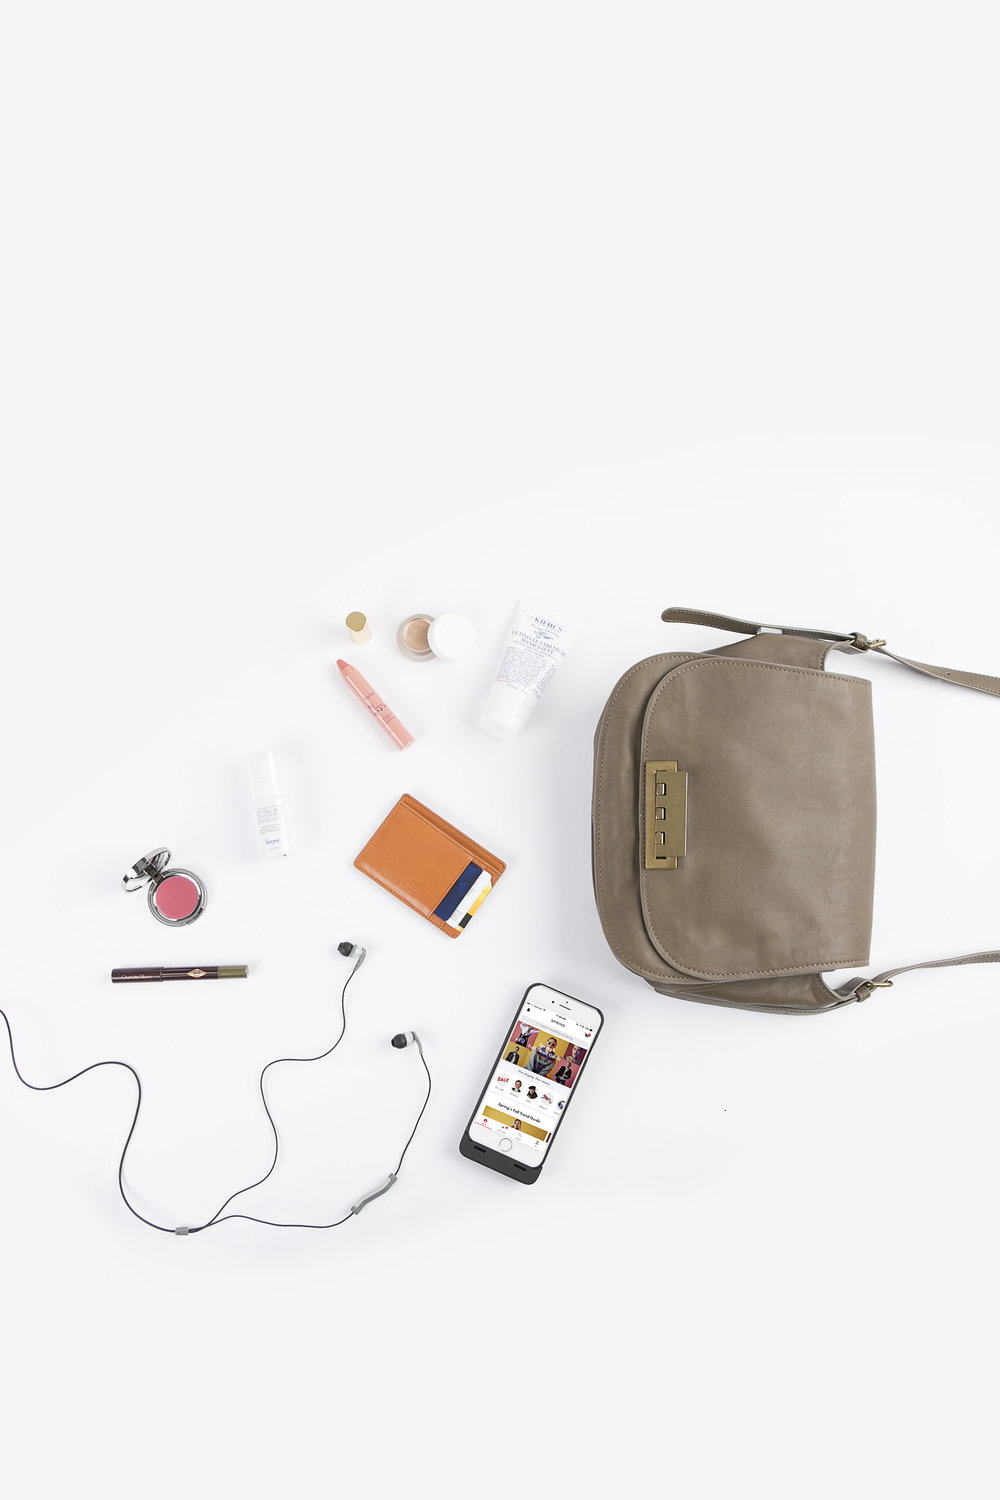 whats in your bag0614.jpg